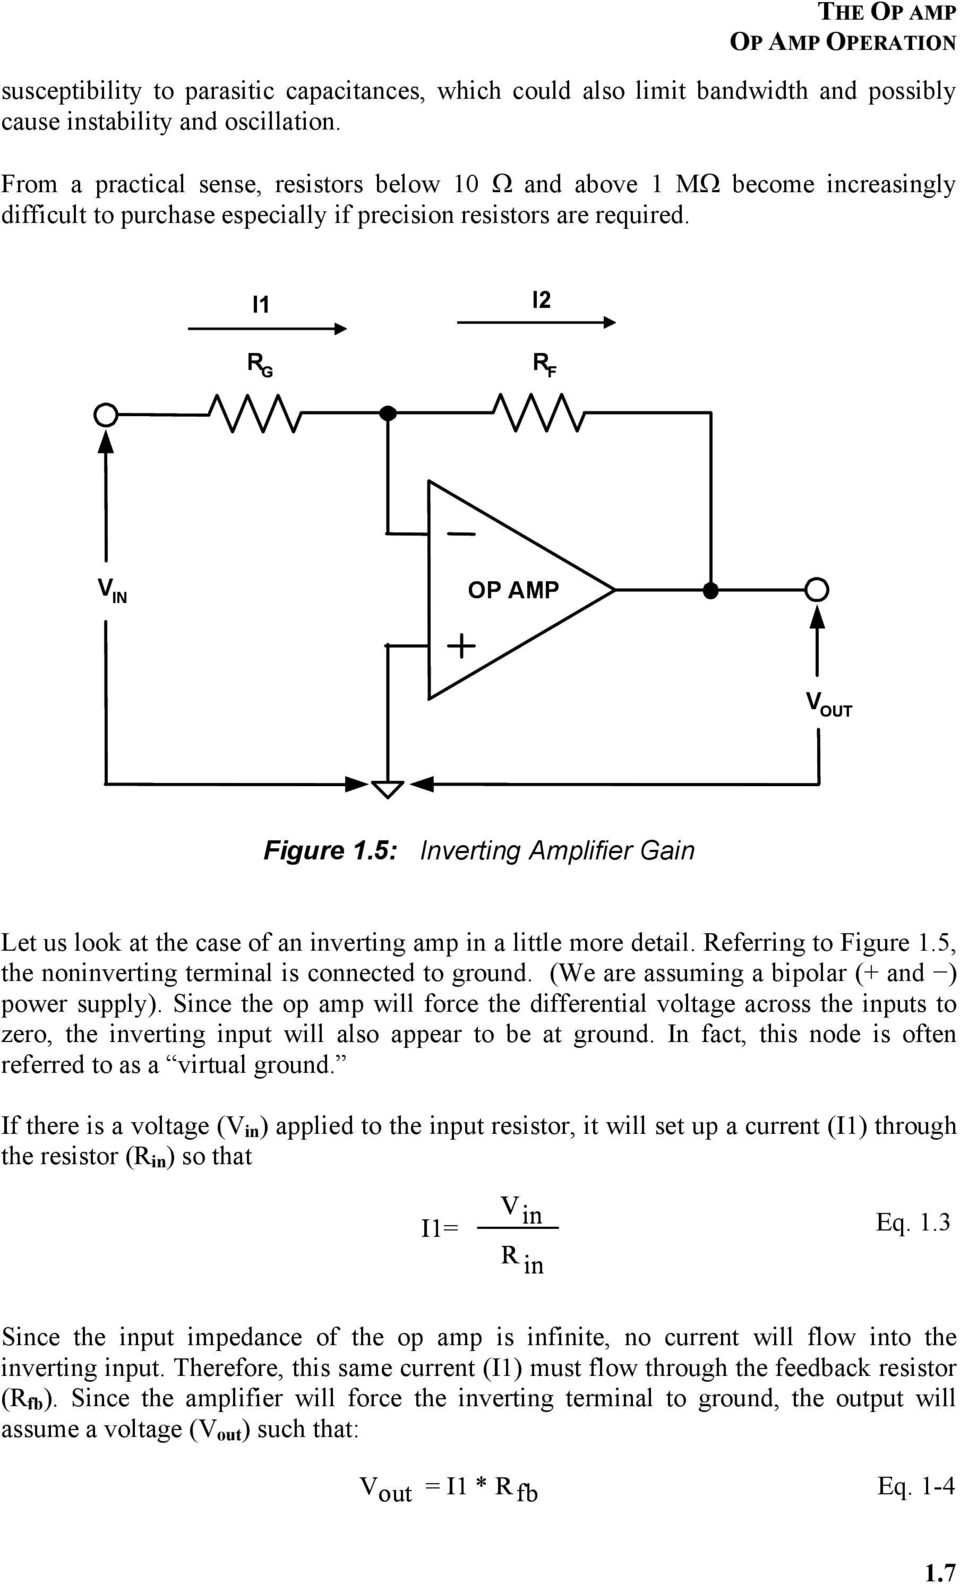 Chapter 1 The Op Amp Pdf Inverting Amplifier With Class Ab 5 Gain Let Us Look At Case Of An In